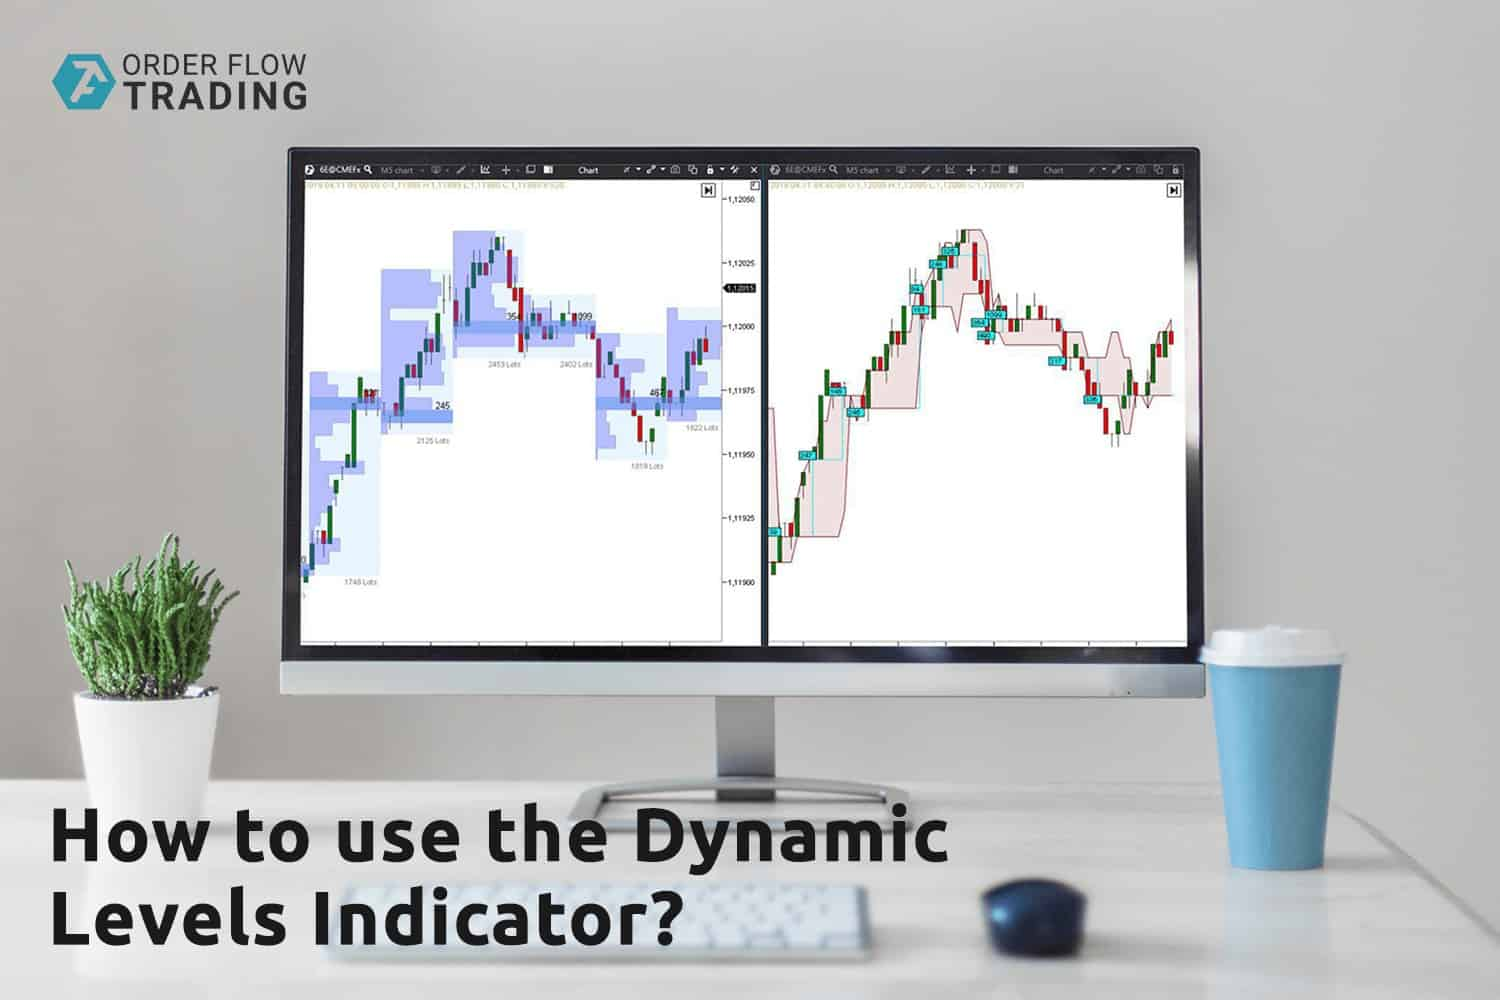 Analysis of levels for trading with the Dynamic Levels indicator